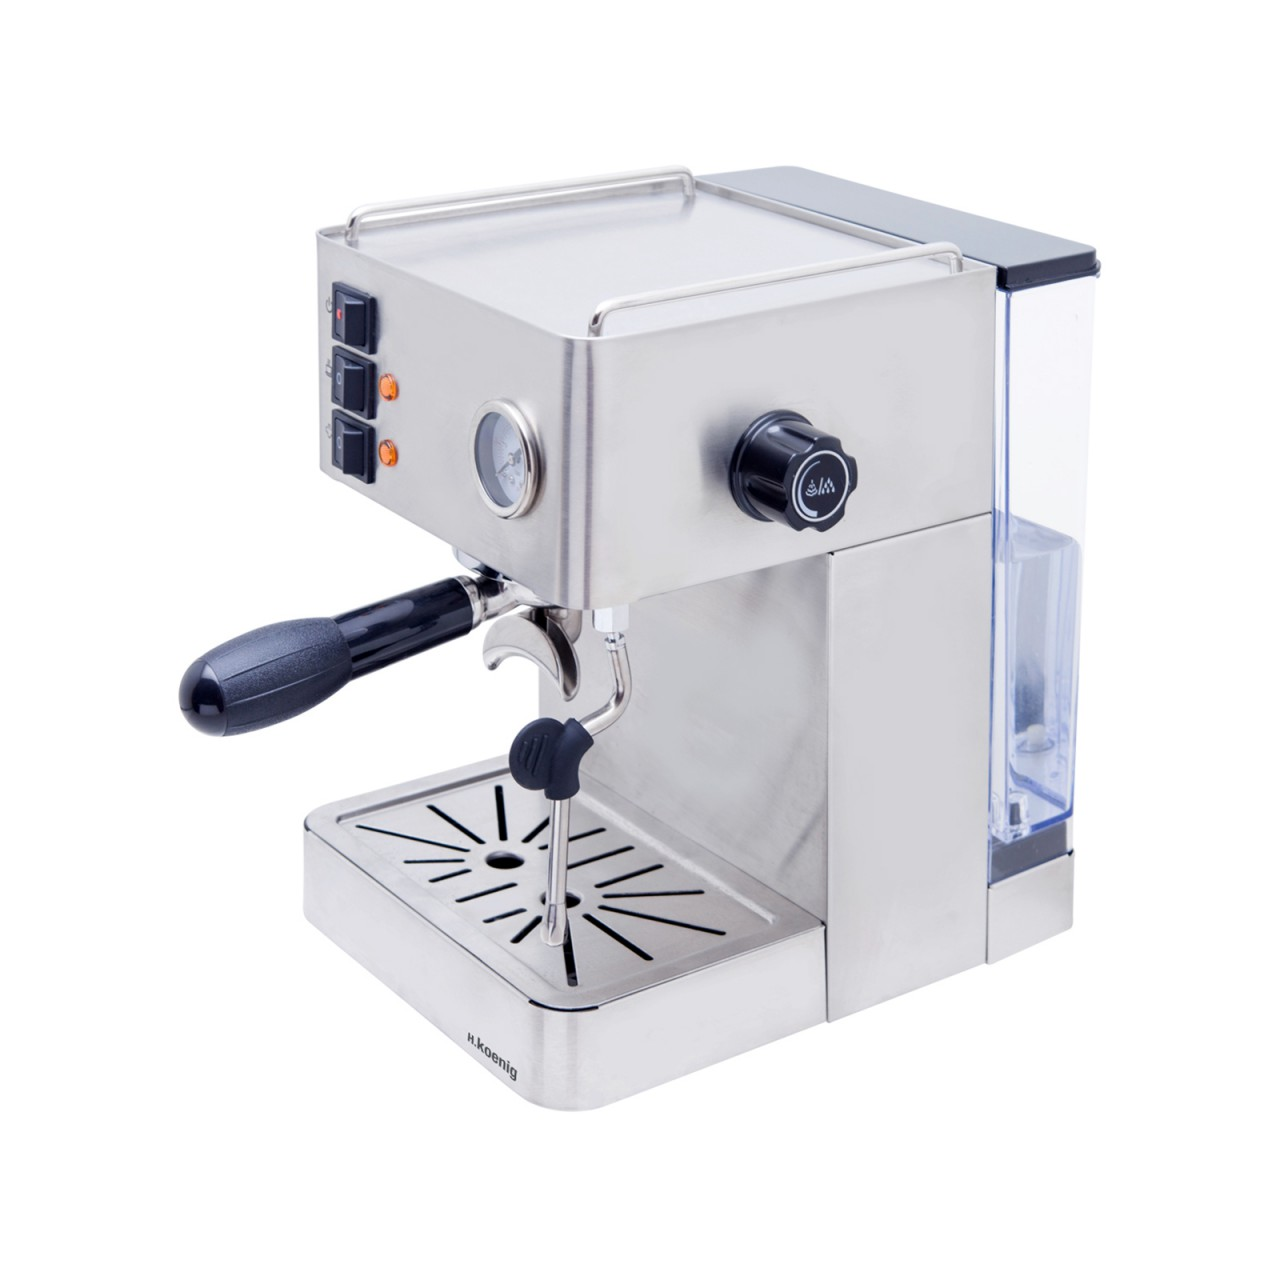 Machine Expresso EXP530 1450W, 15 bar